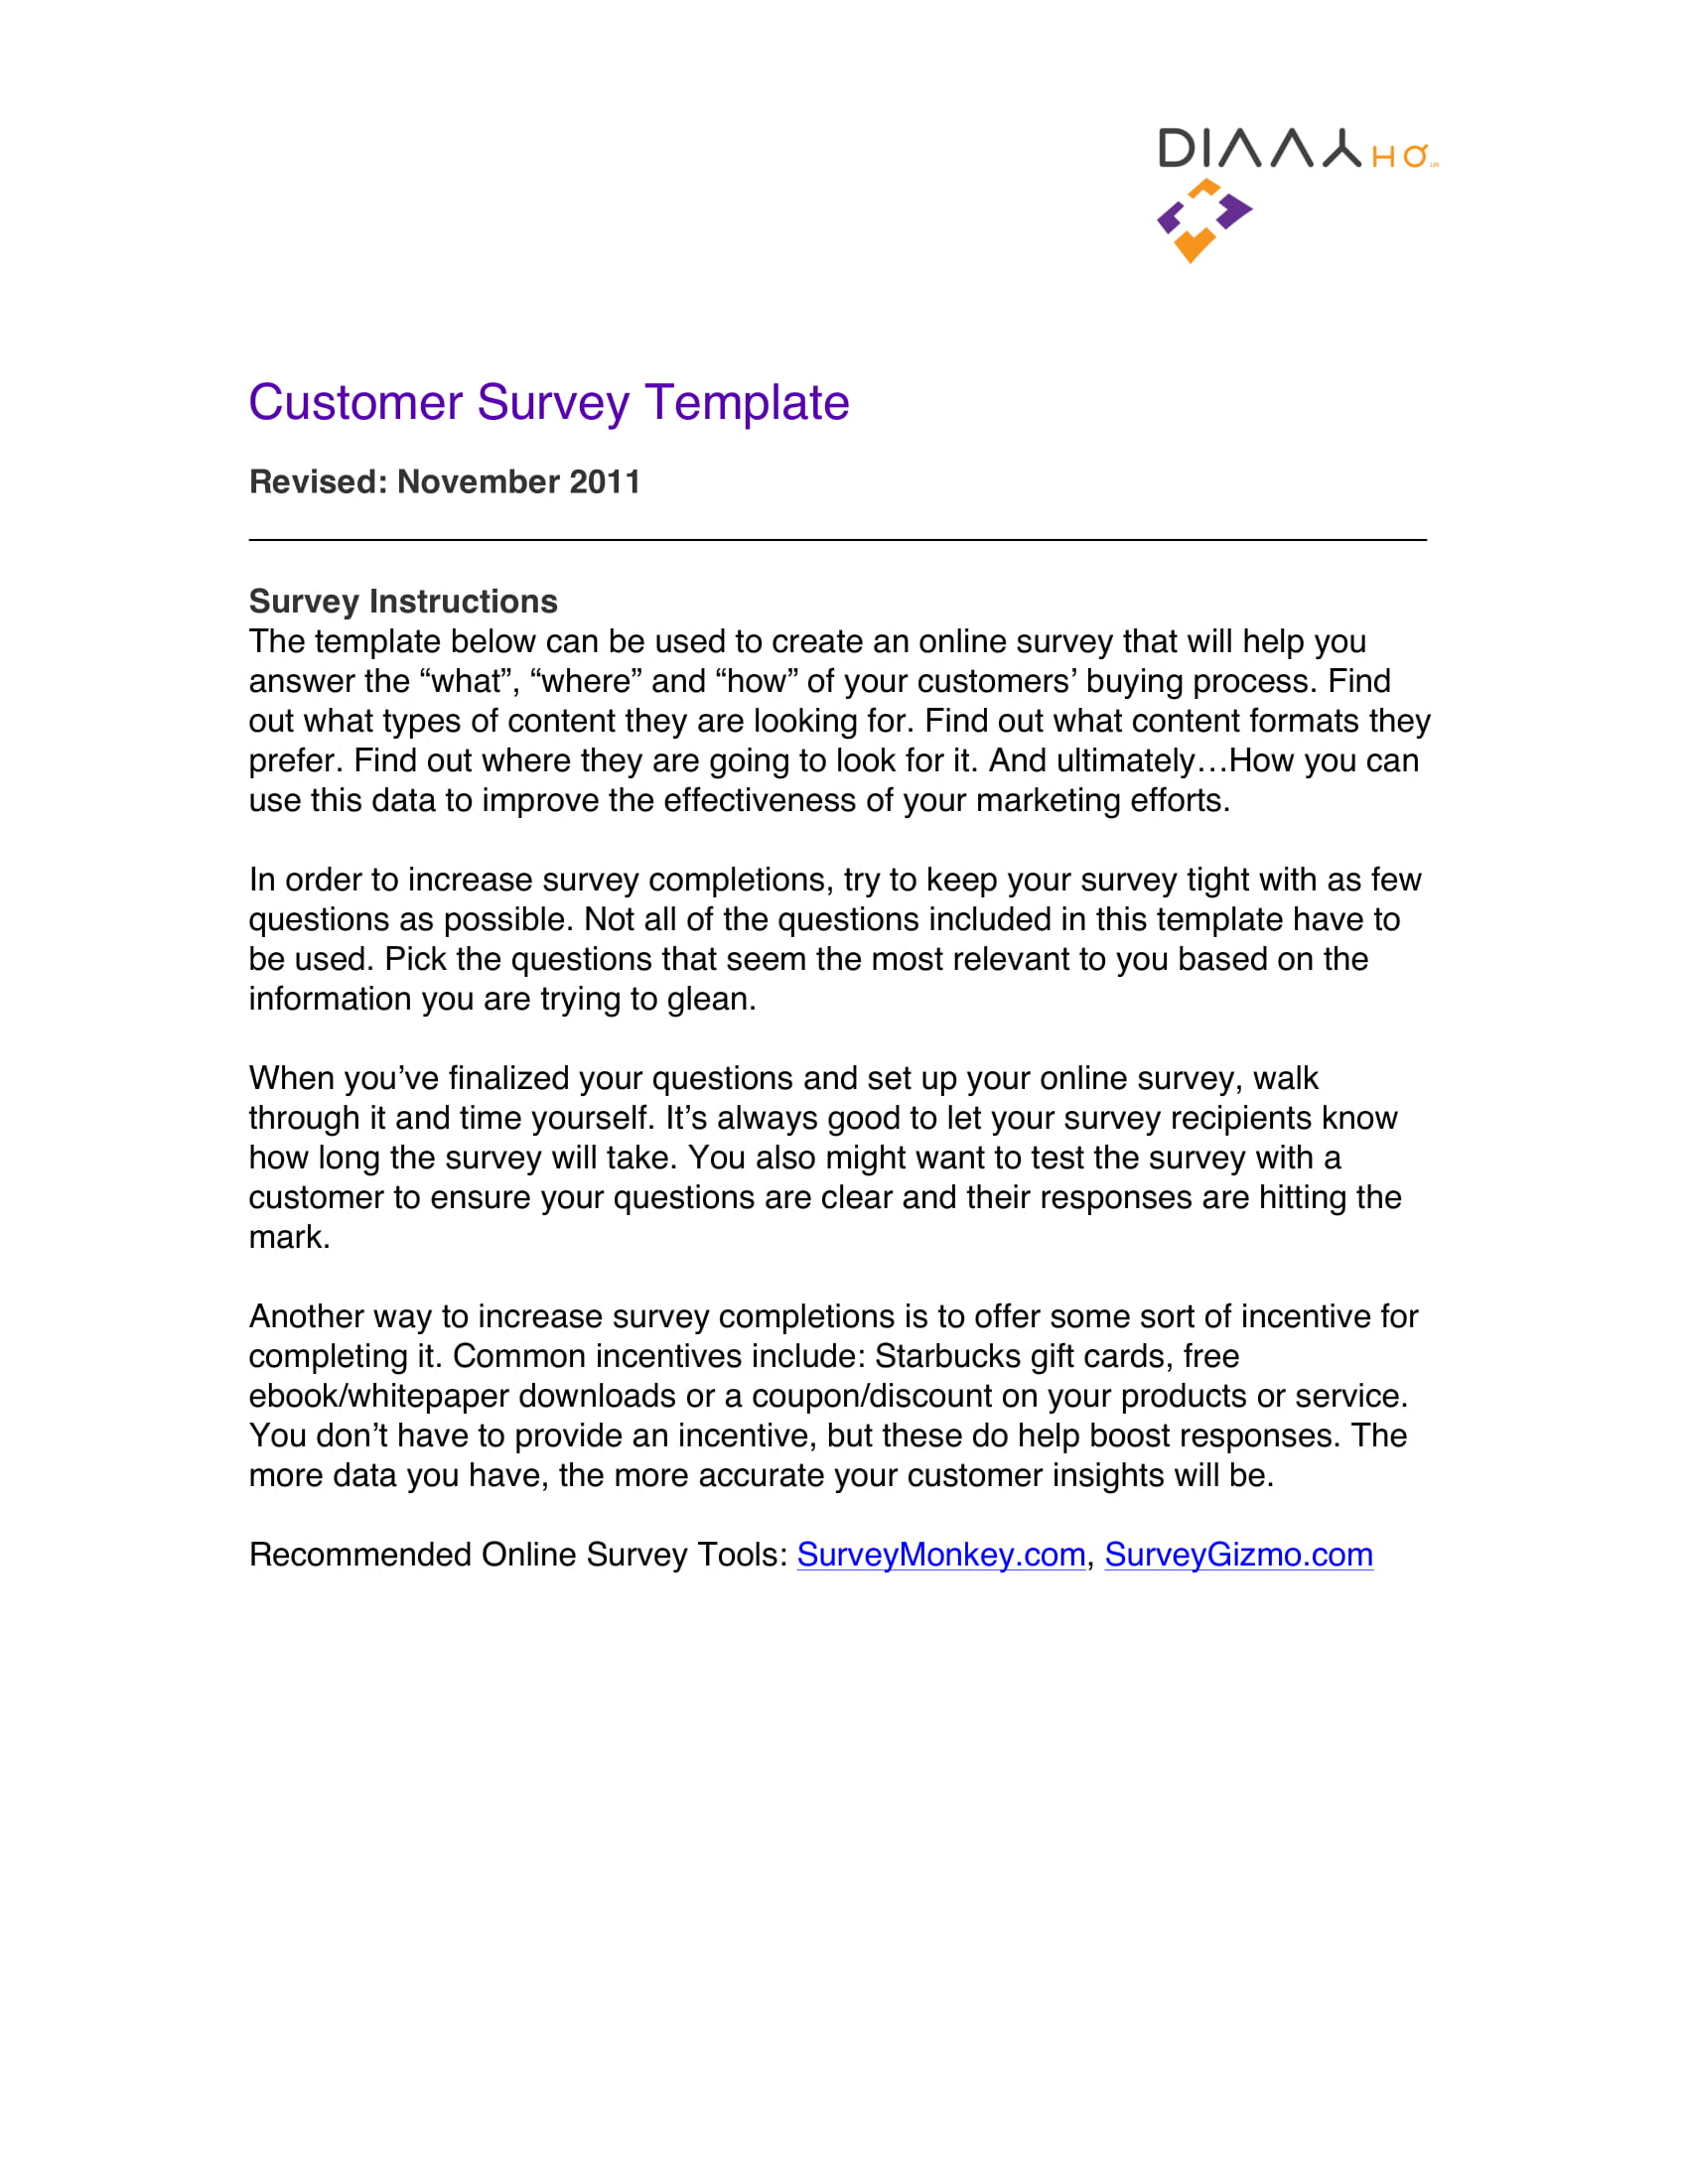 5 easy seriously steps to better buyer profiling customer survey template 1